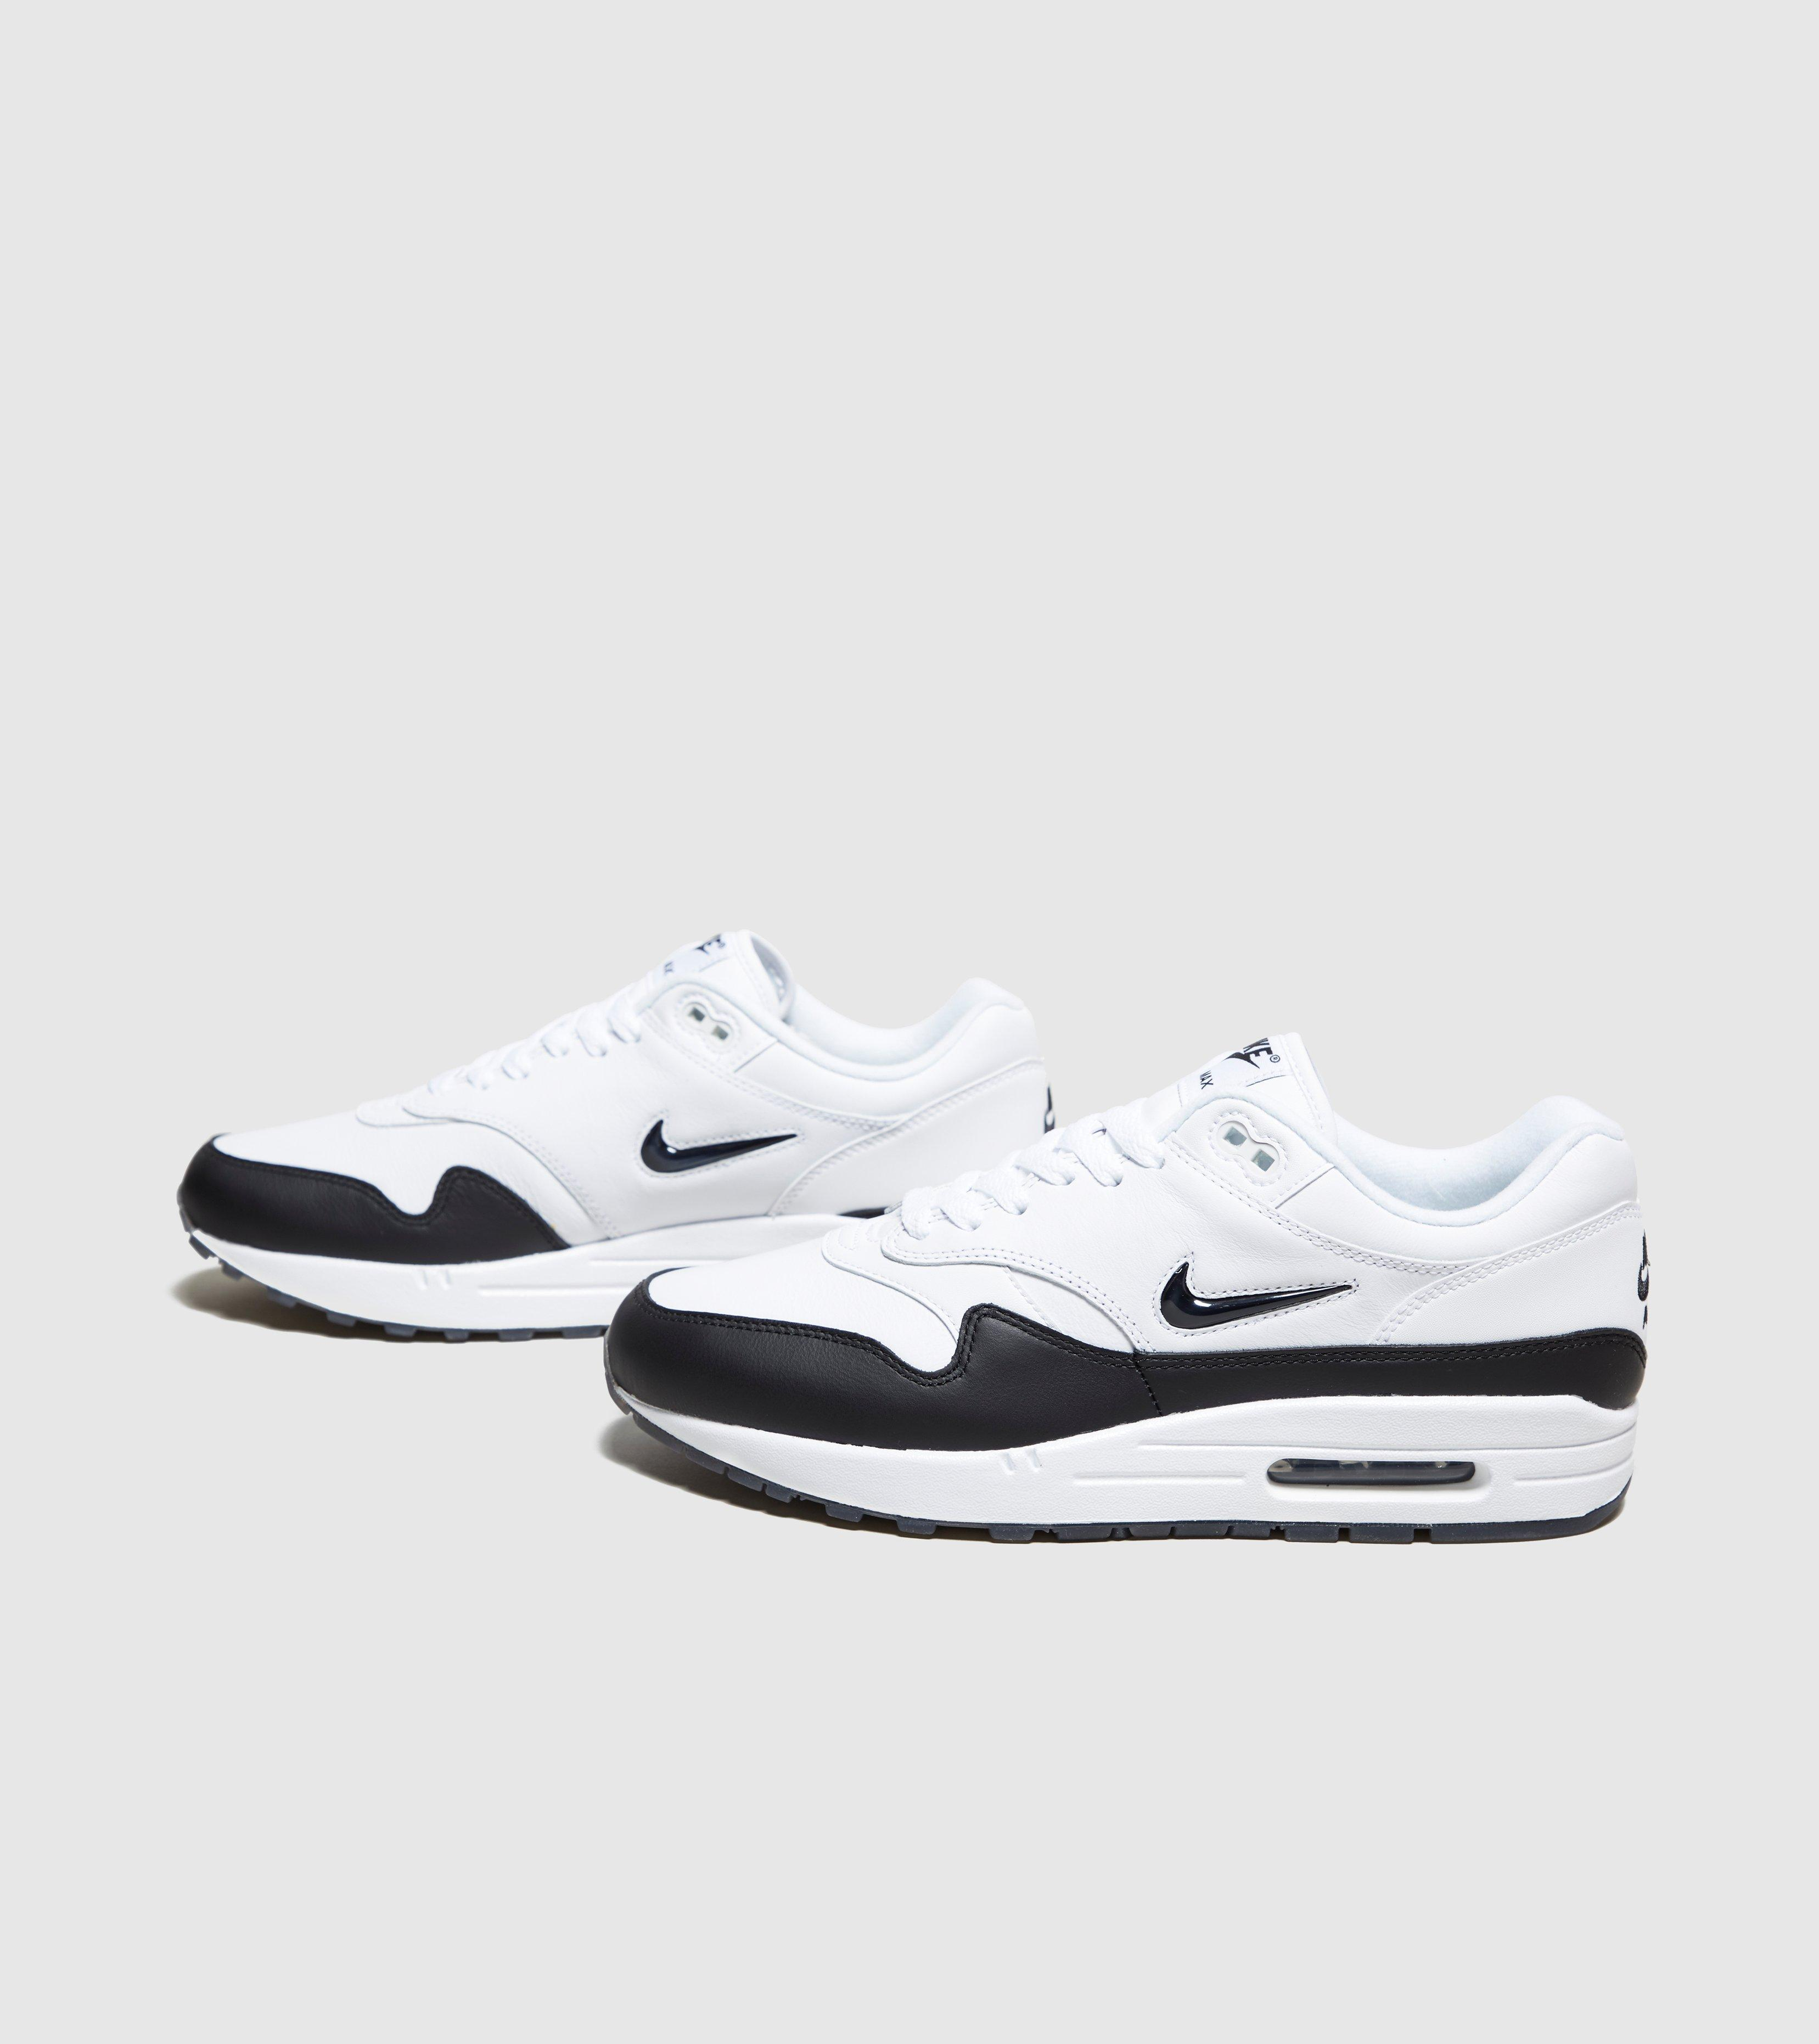 lyst nike air max 1 jewel qs in white for men. Black Bedroom Furniture Sets. Home Design Ideas